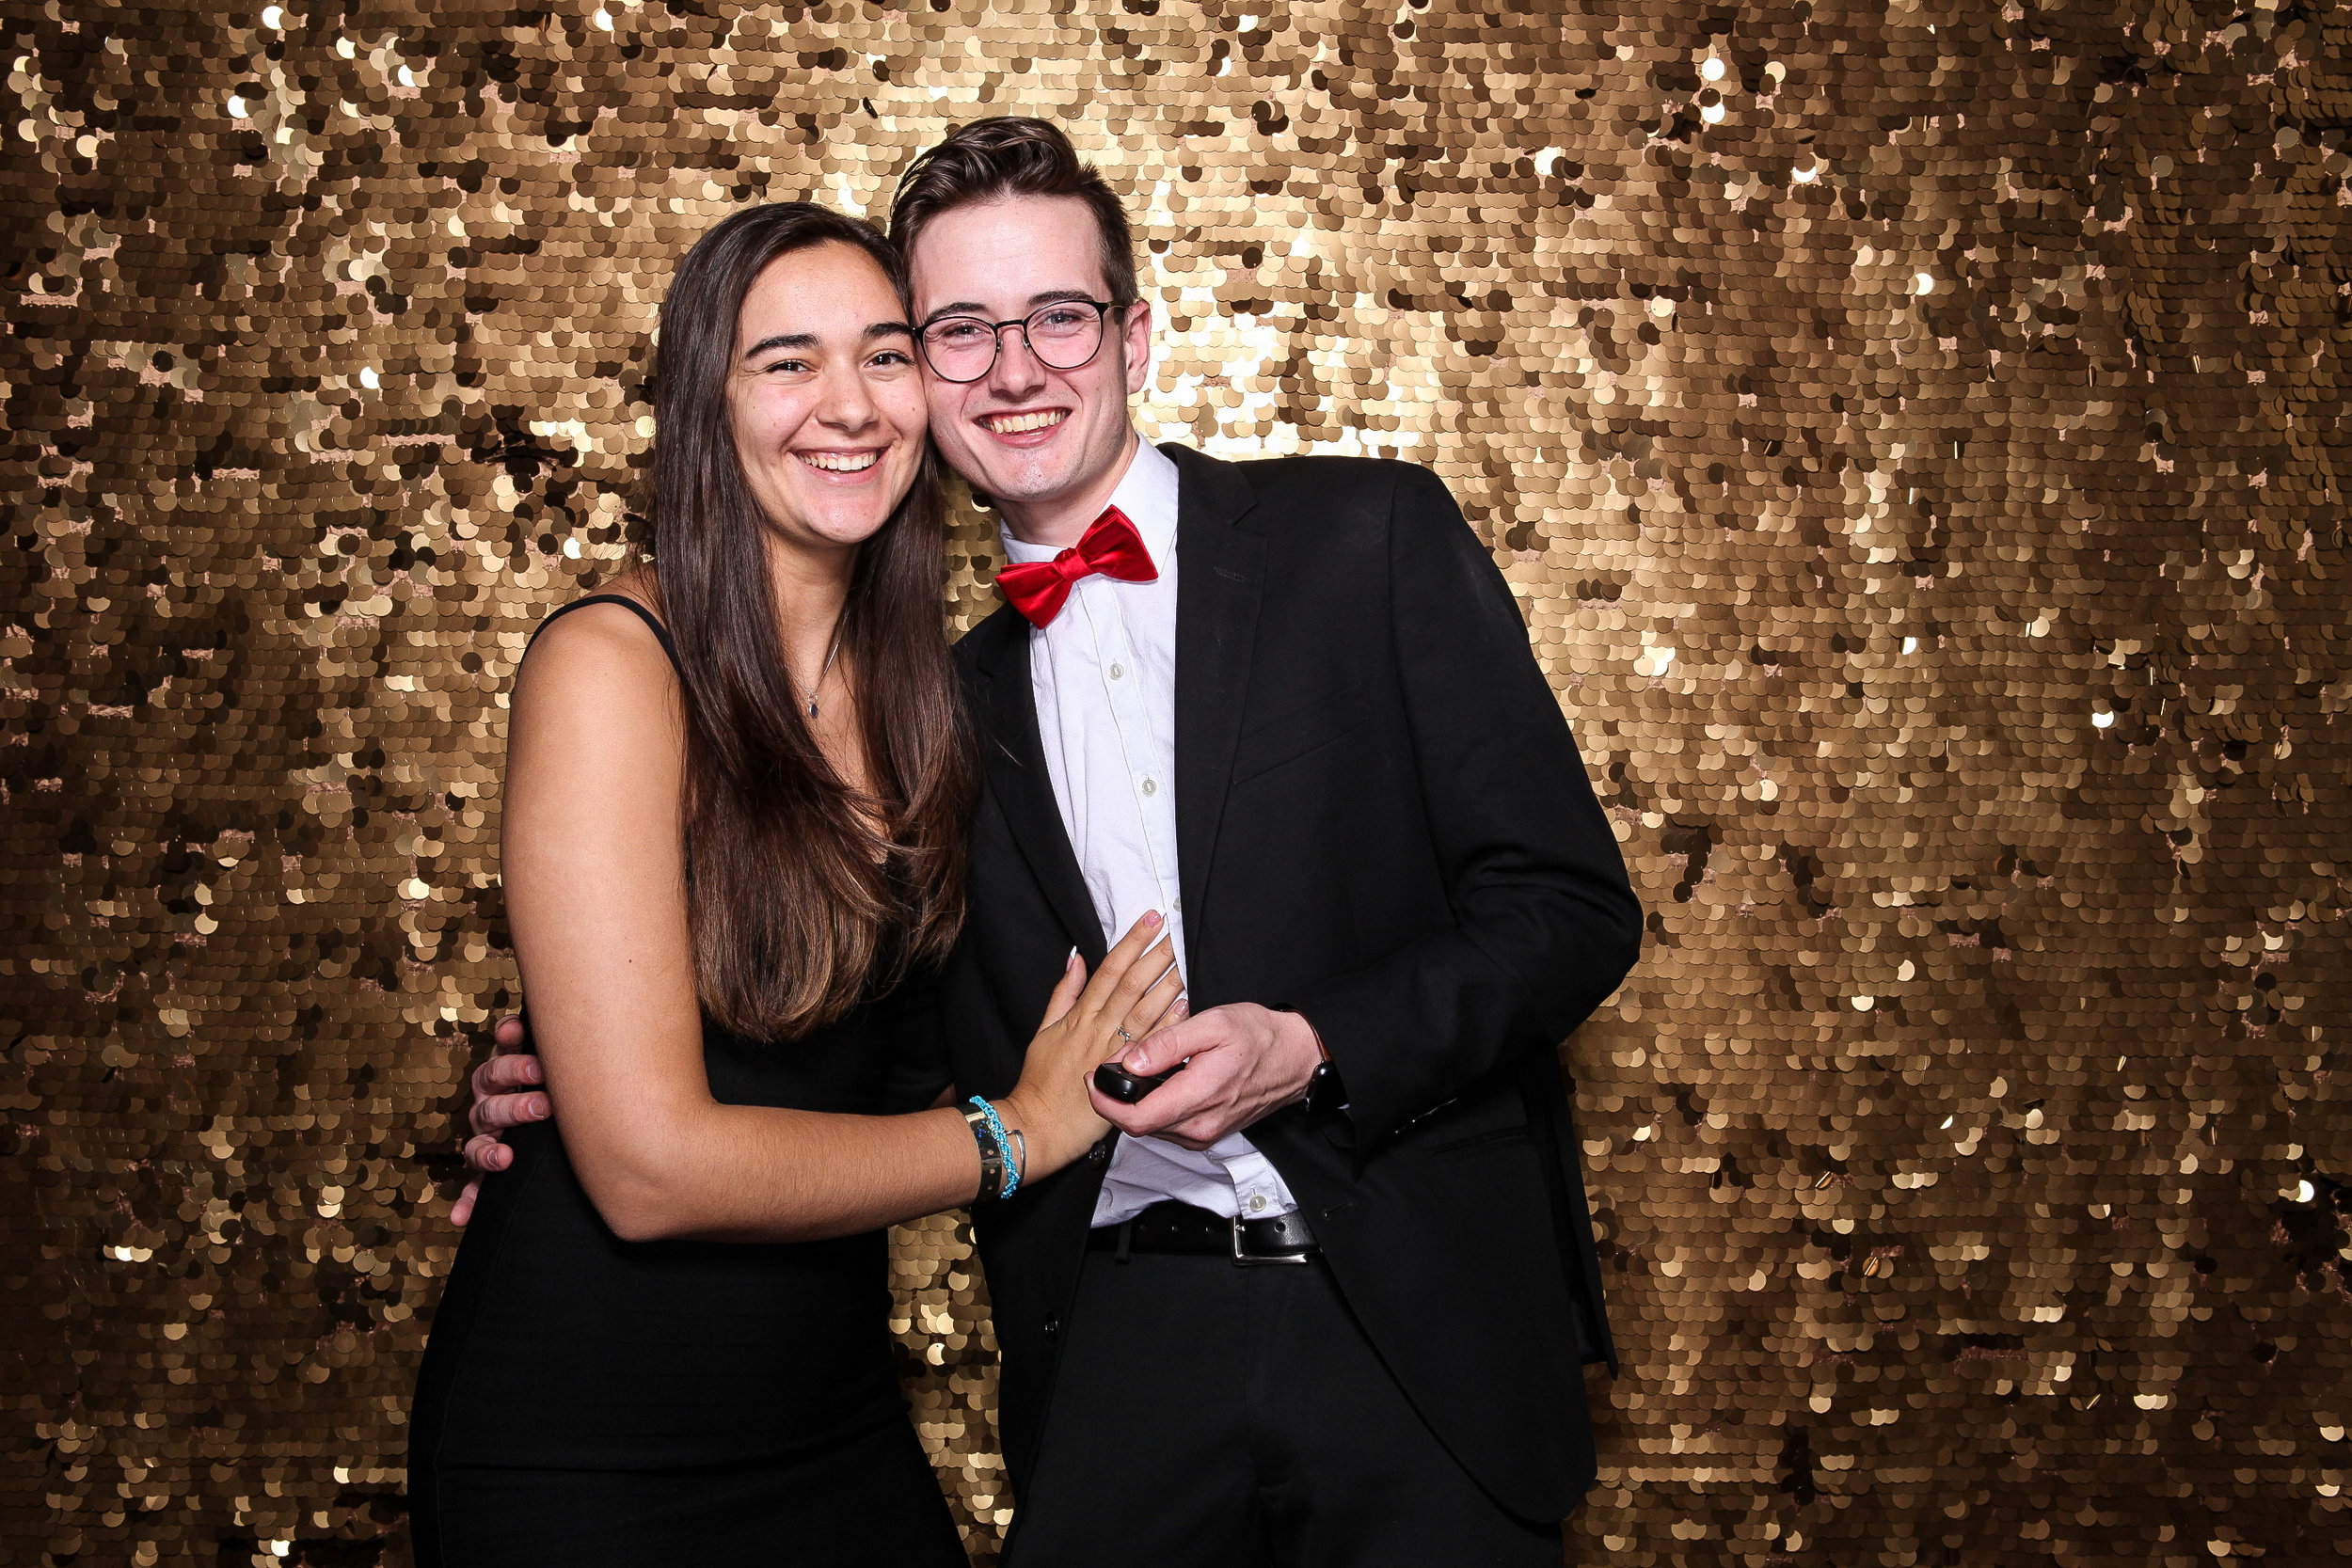 20190503_Adelphi_Senior_Formal-190.jpg